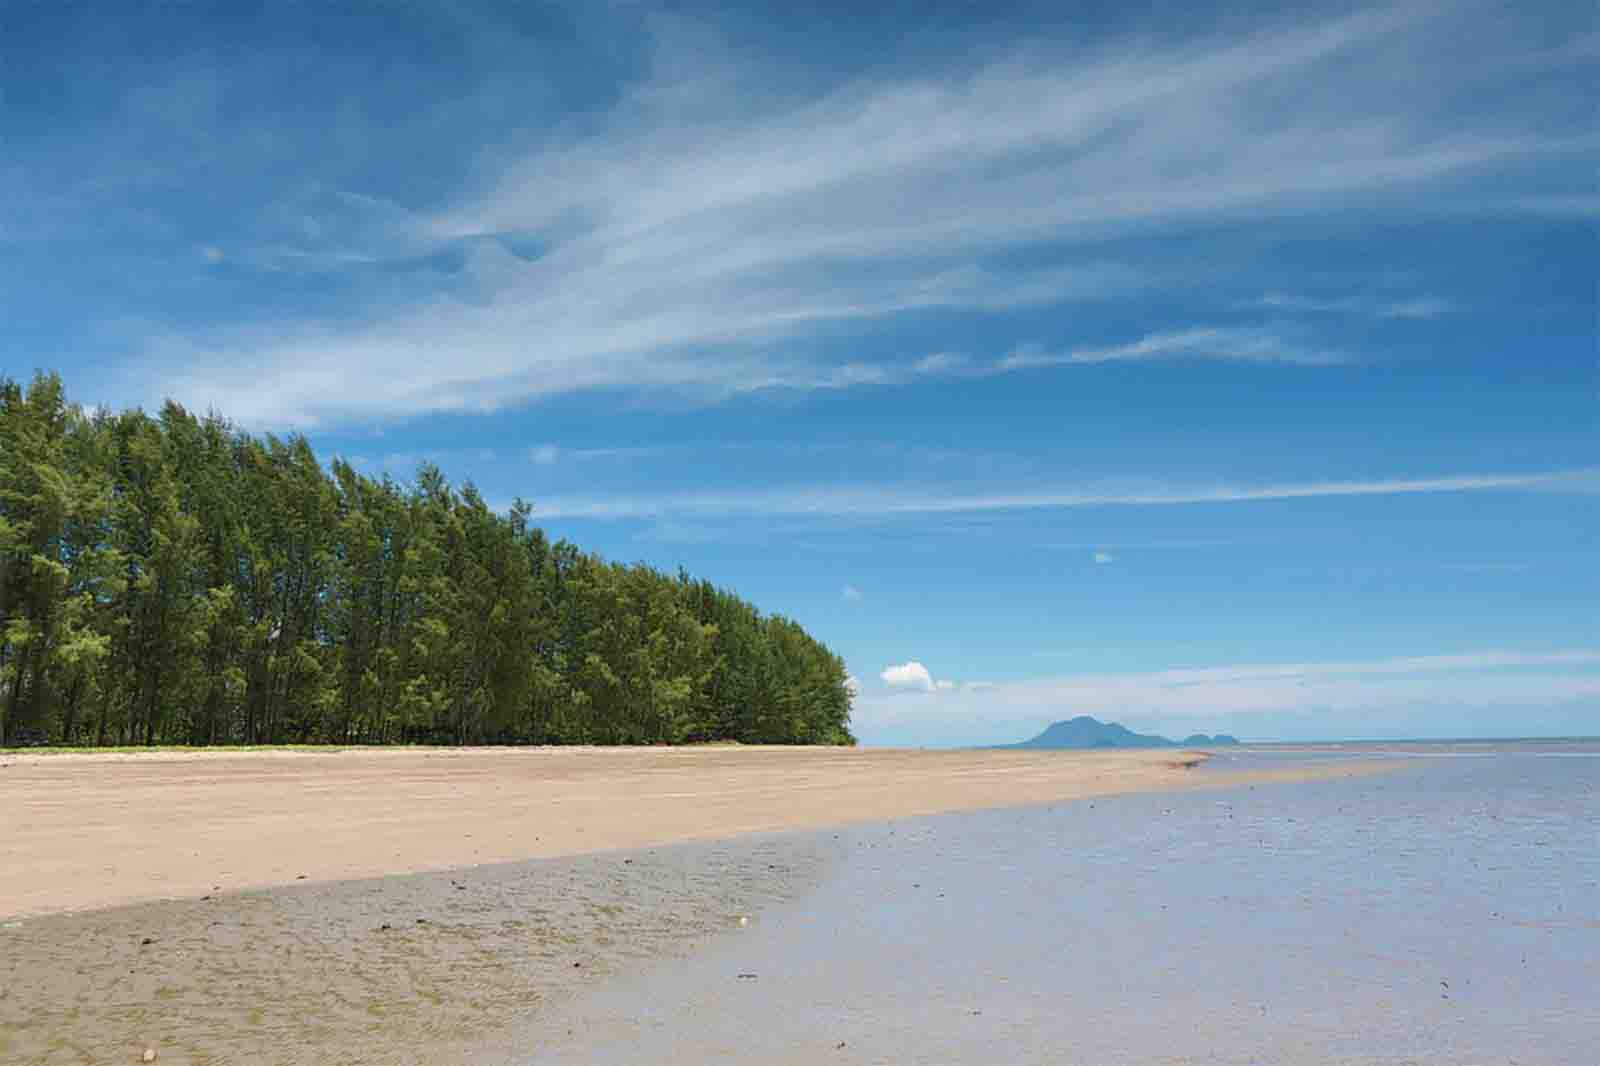 for sale - 69 Rai Beach Land for Sale next to Five-star Development - Had Yao (Krabi Long Beach), Krabi